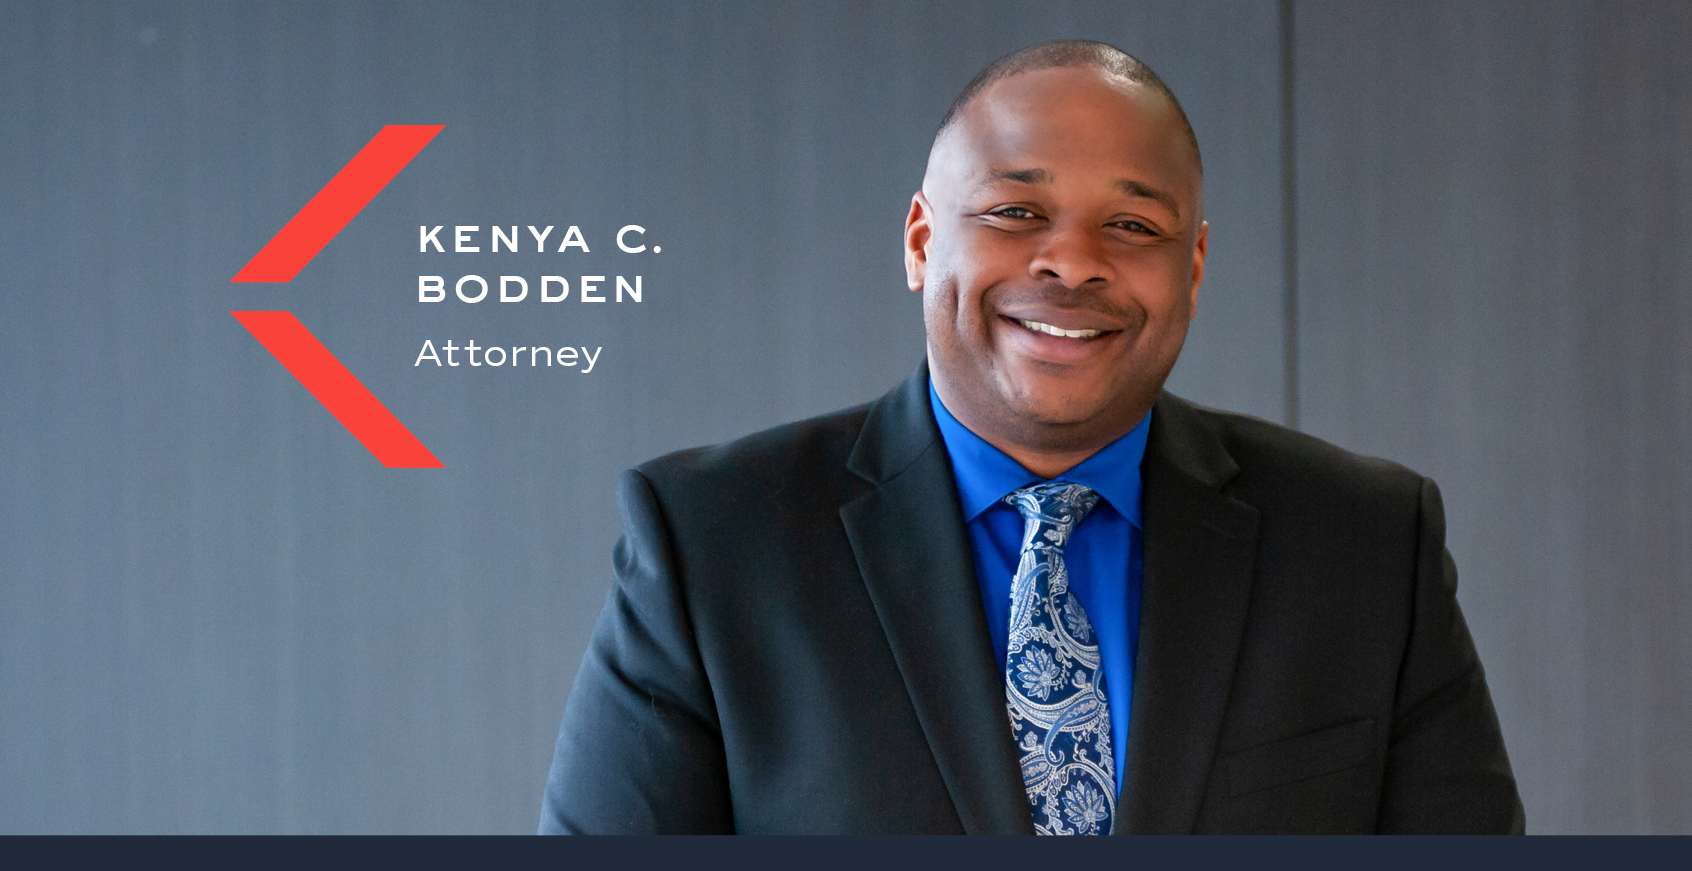 Larson King Attorney Kenya C Bodden